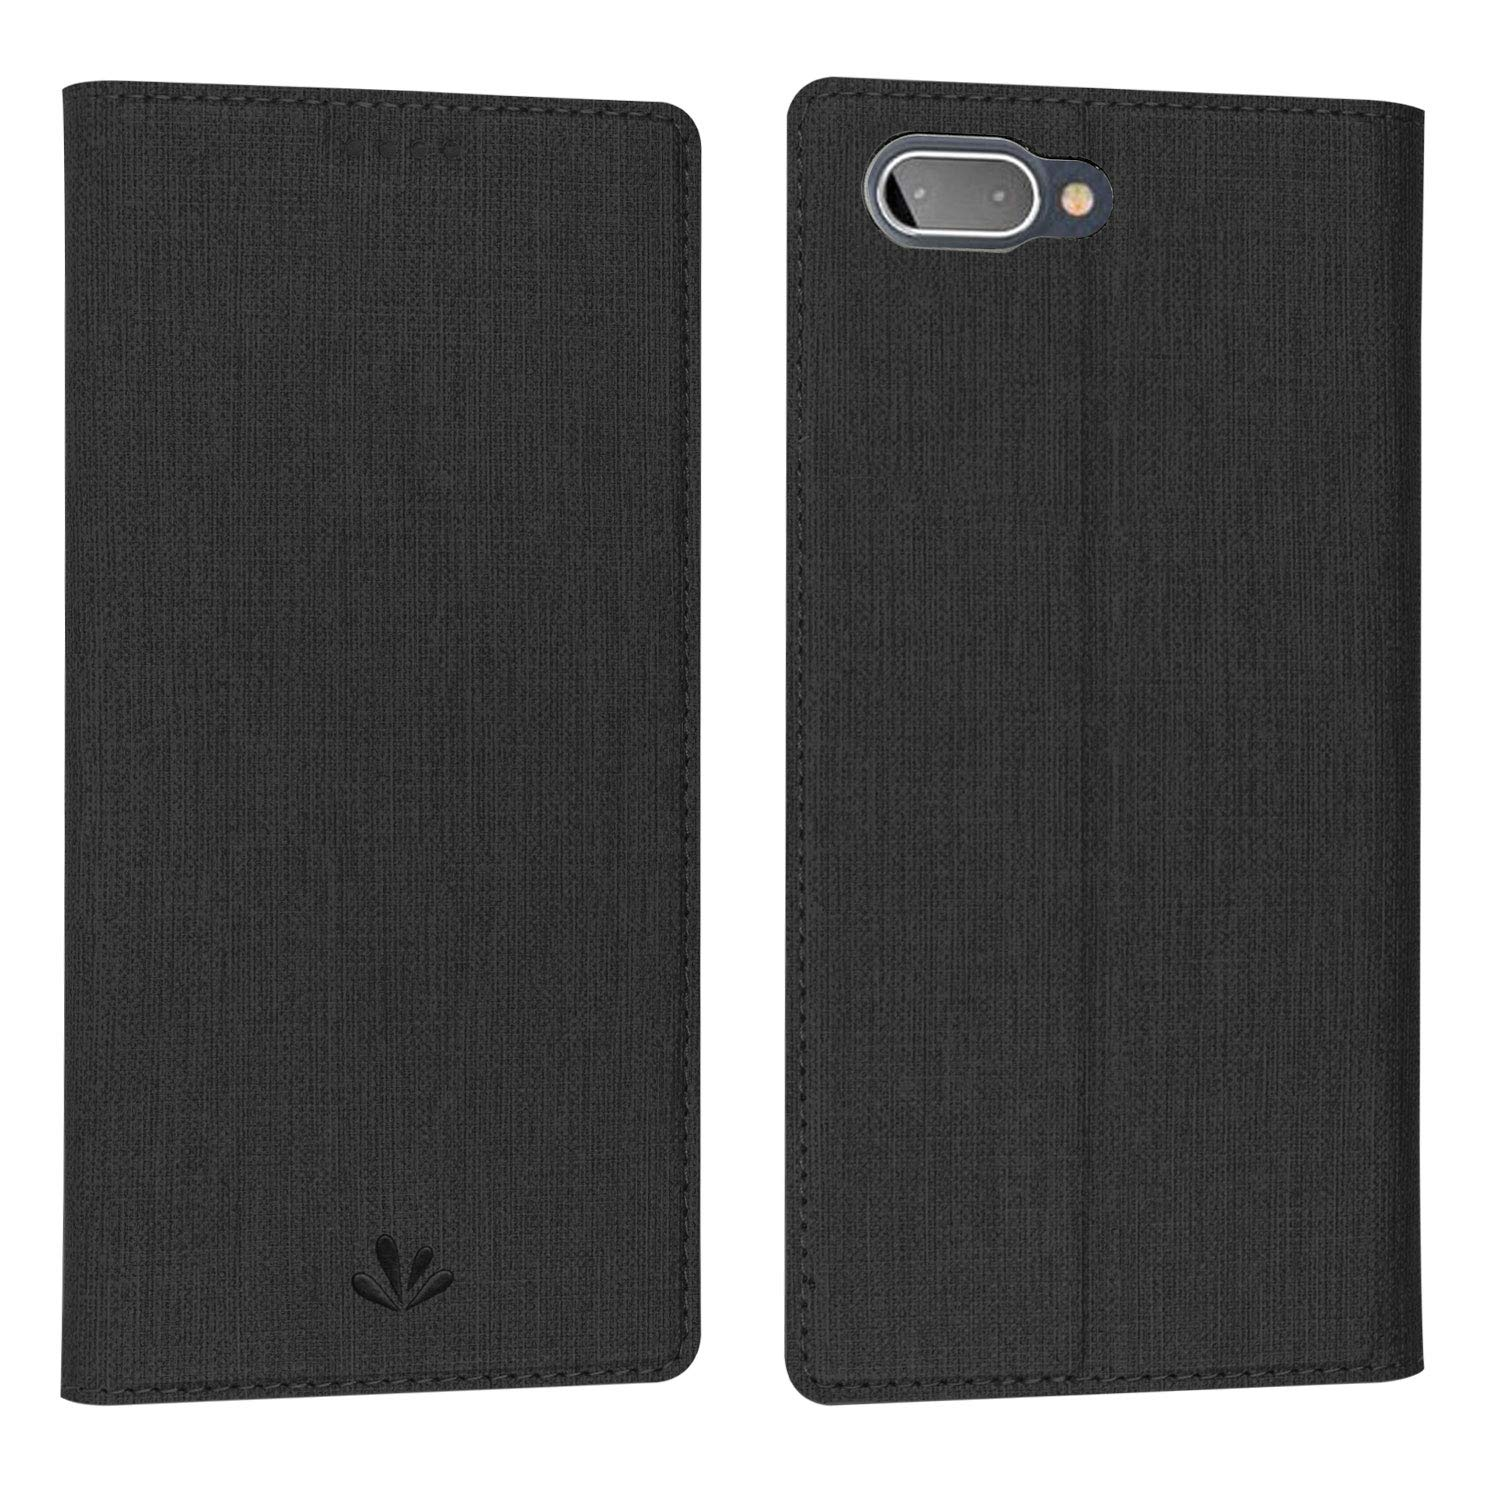 Simicoo BlackBerry Key2 LE Flip PU Leather Slim Case Card Holster Stand  Magnetic Cover Clear Silicone TPU Full Body Shockproof Pocket Thin Wallet  Case